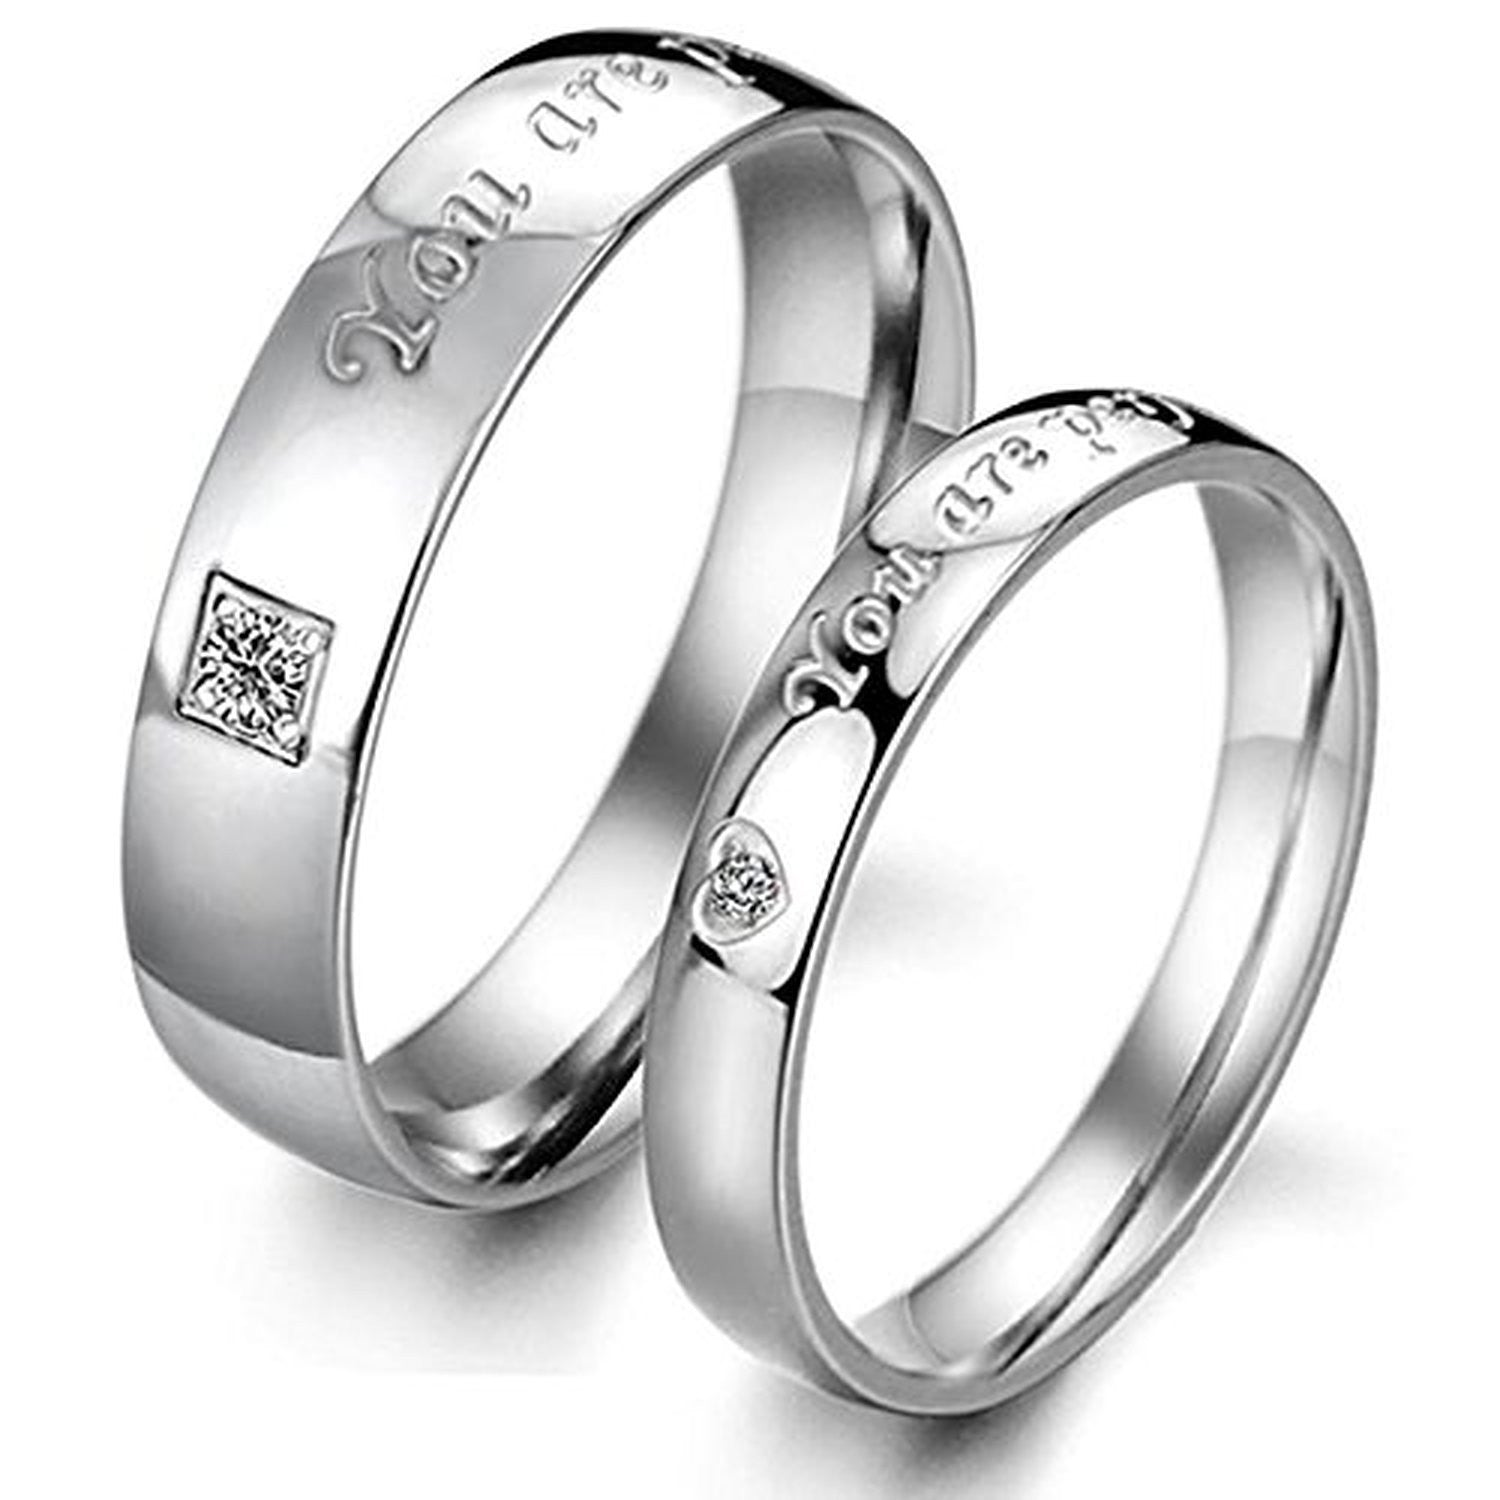 jewelry products rings couple titanium fashion steel az engagement wedding ring evermarker